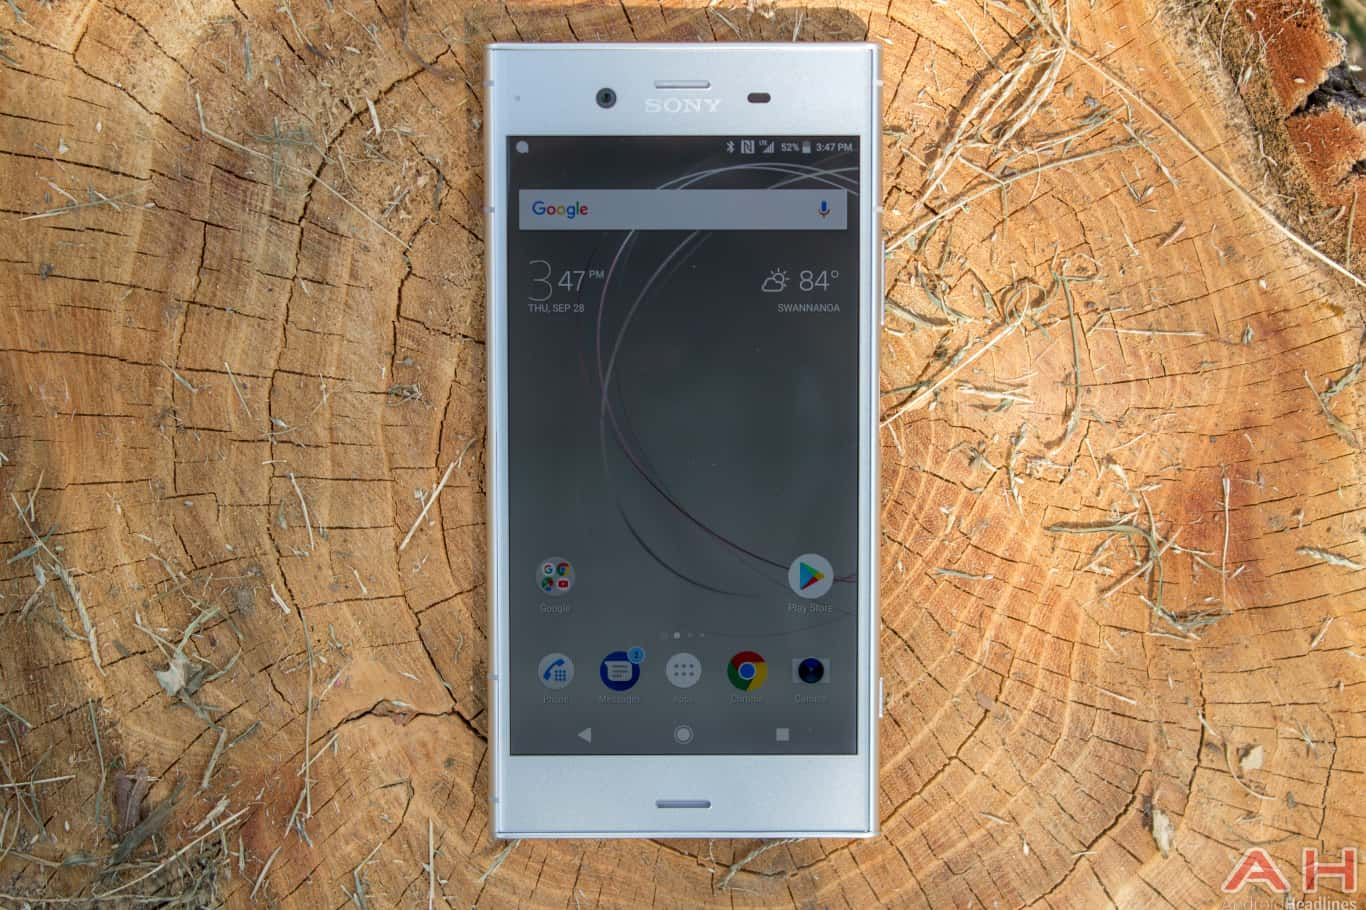 Sony Xperia Xz1 To Launch In Canada On October 26 Sony Xperia Sony Product Launch